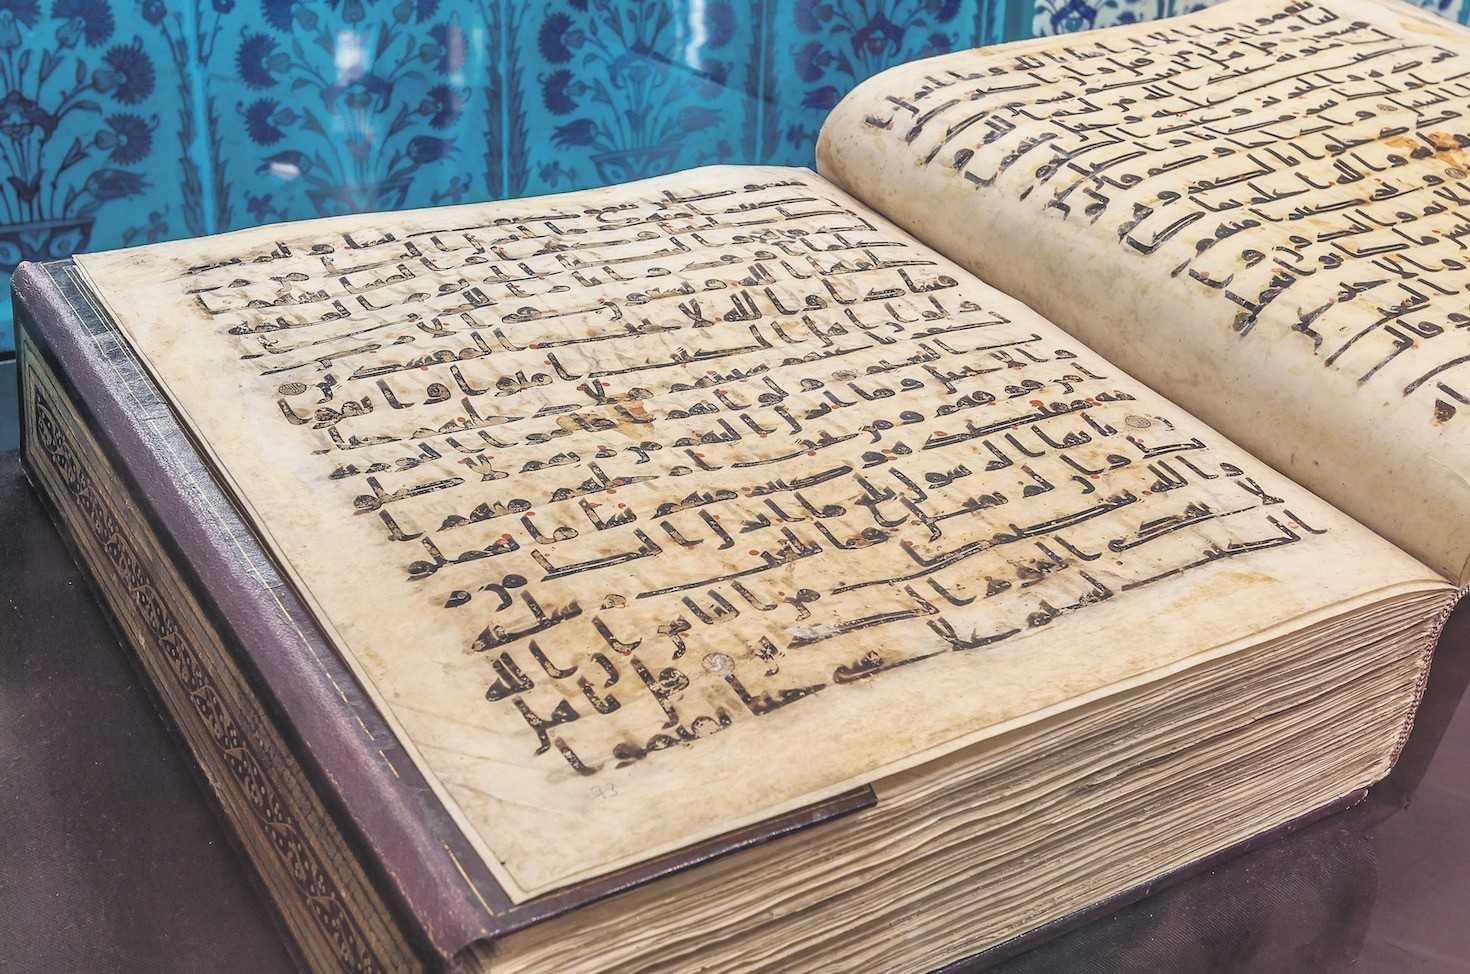 One of the old Qurans displayed at the Topkapu0131 Palace.